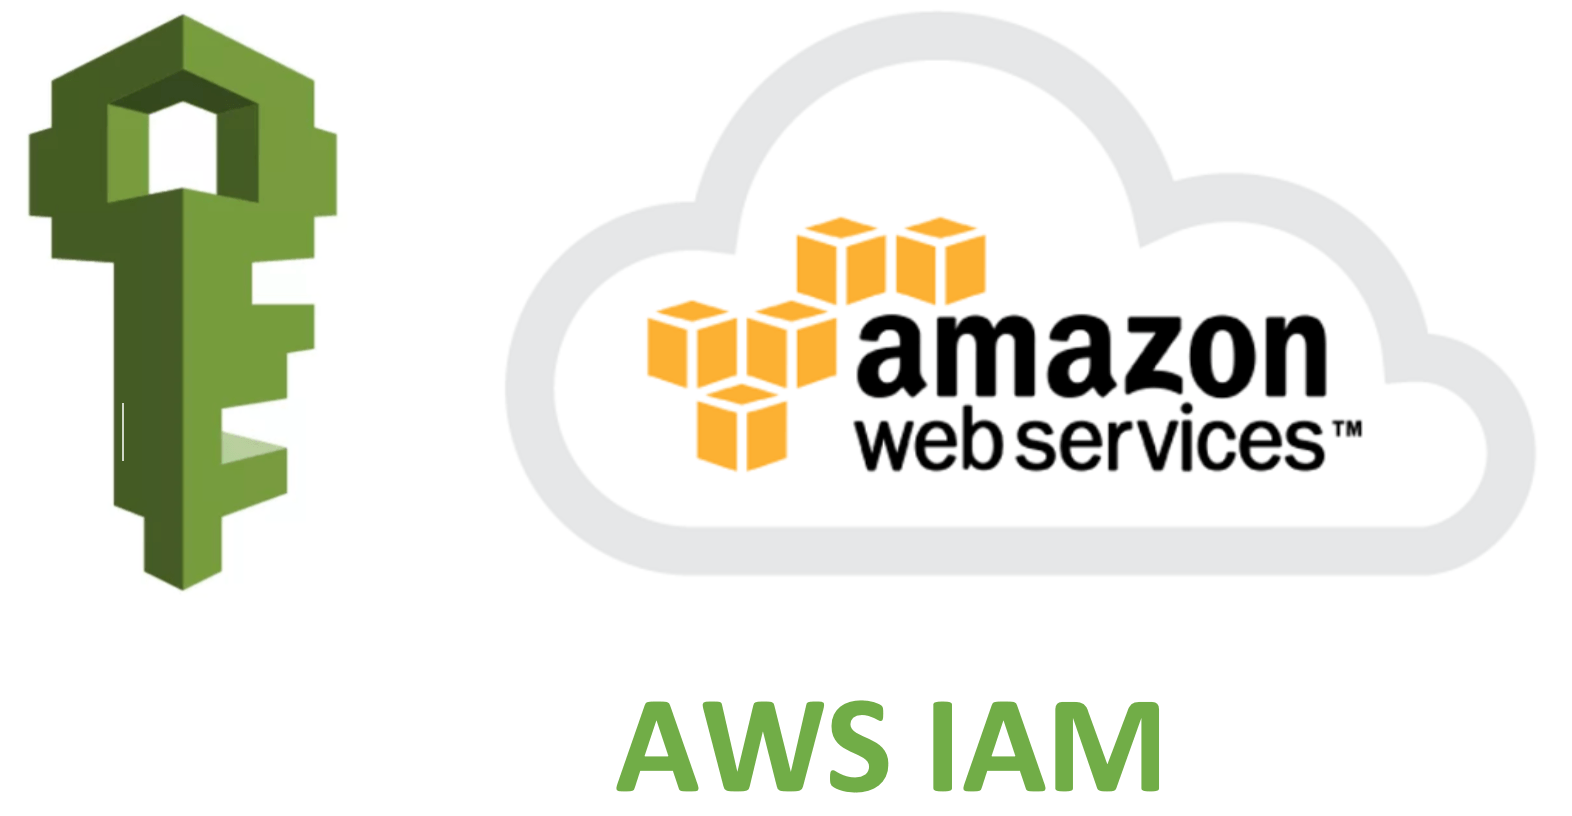 Amazon AWS - IAM Identity Access Management